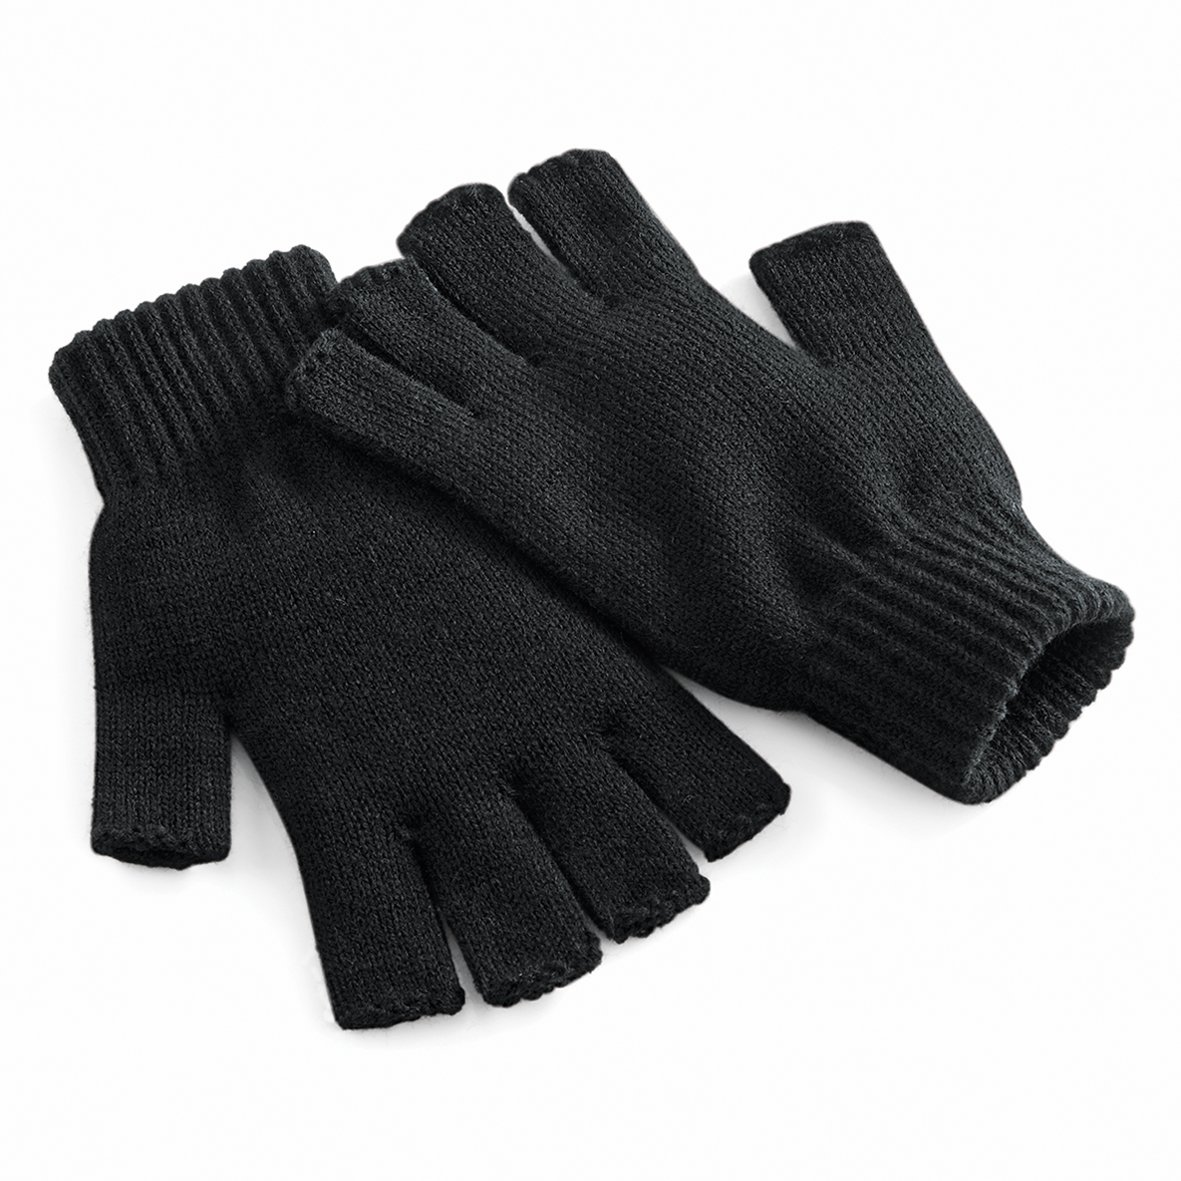 Beechfield Unisex Plain Basic Fingerless Winter Gloves (S/M) (Charcoal) UTRW2032_4